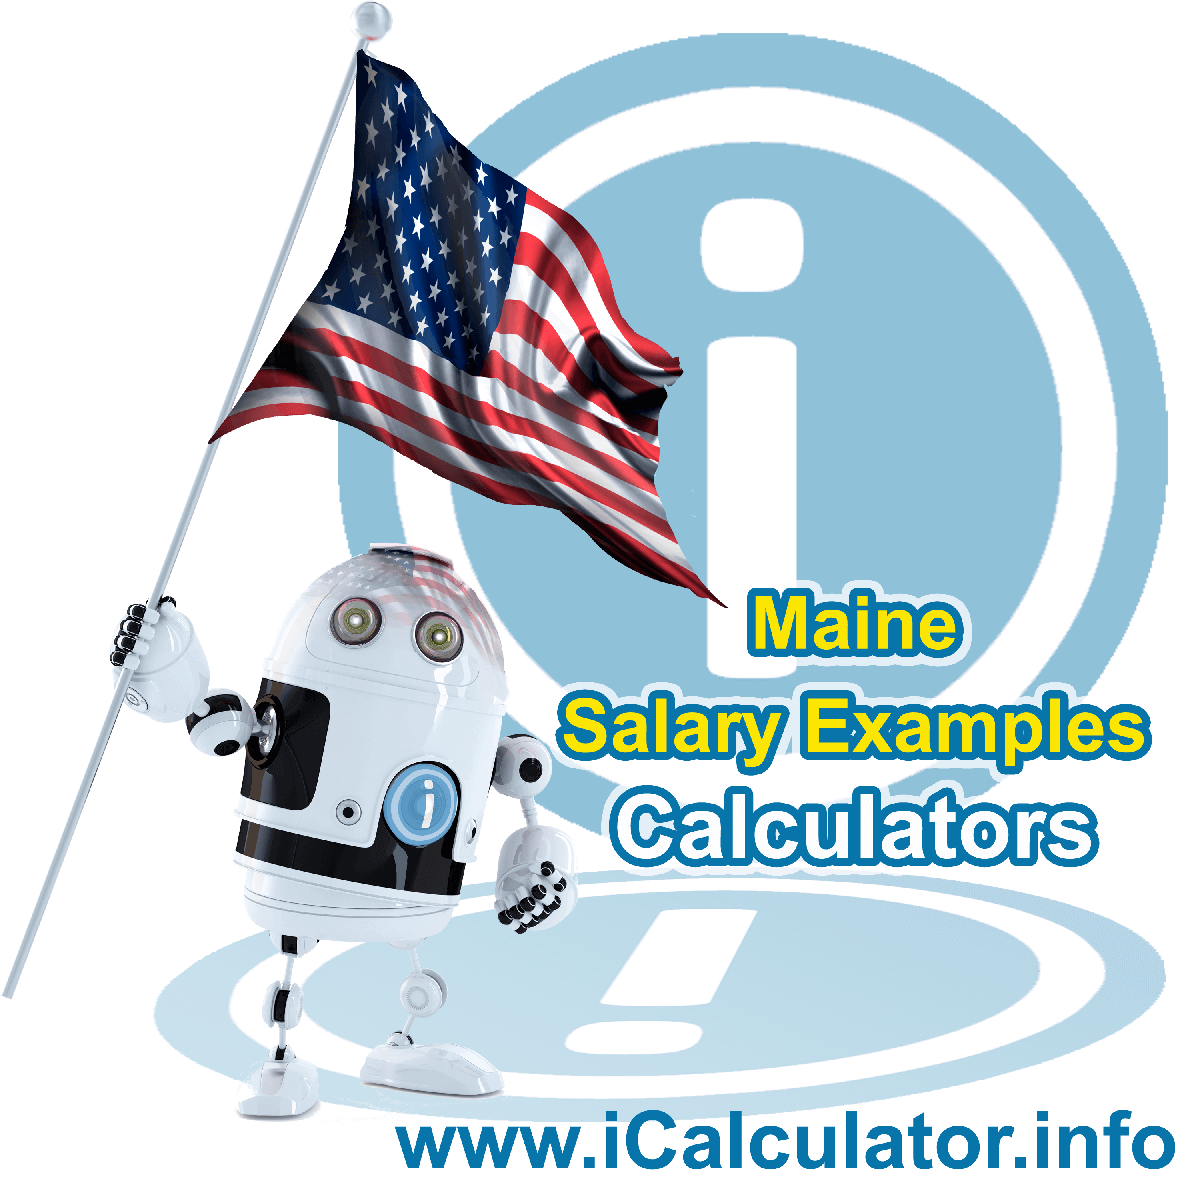 Maine Salary Example for $170.00 in 2020 | iCalculator | $170.00 salary example for employee and employer paying Maine State tincome taxes. Detailed salary after tax calculation including Maine State Tax, Federal State Tax, Medicare Deductions, Social Security, Capital Gains and other income tax and salary deductions complete with supporting Maine state tax tables